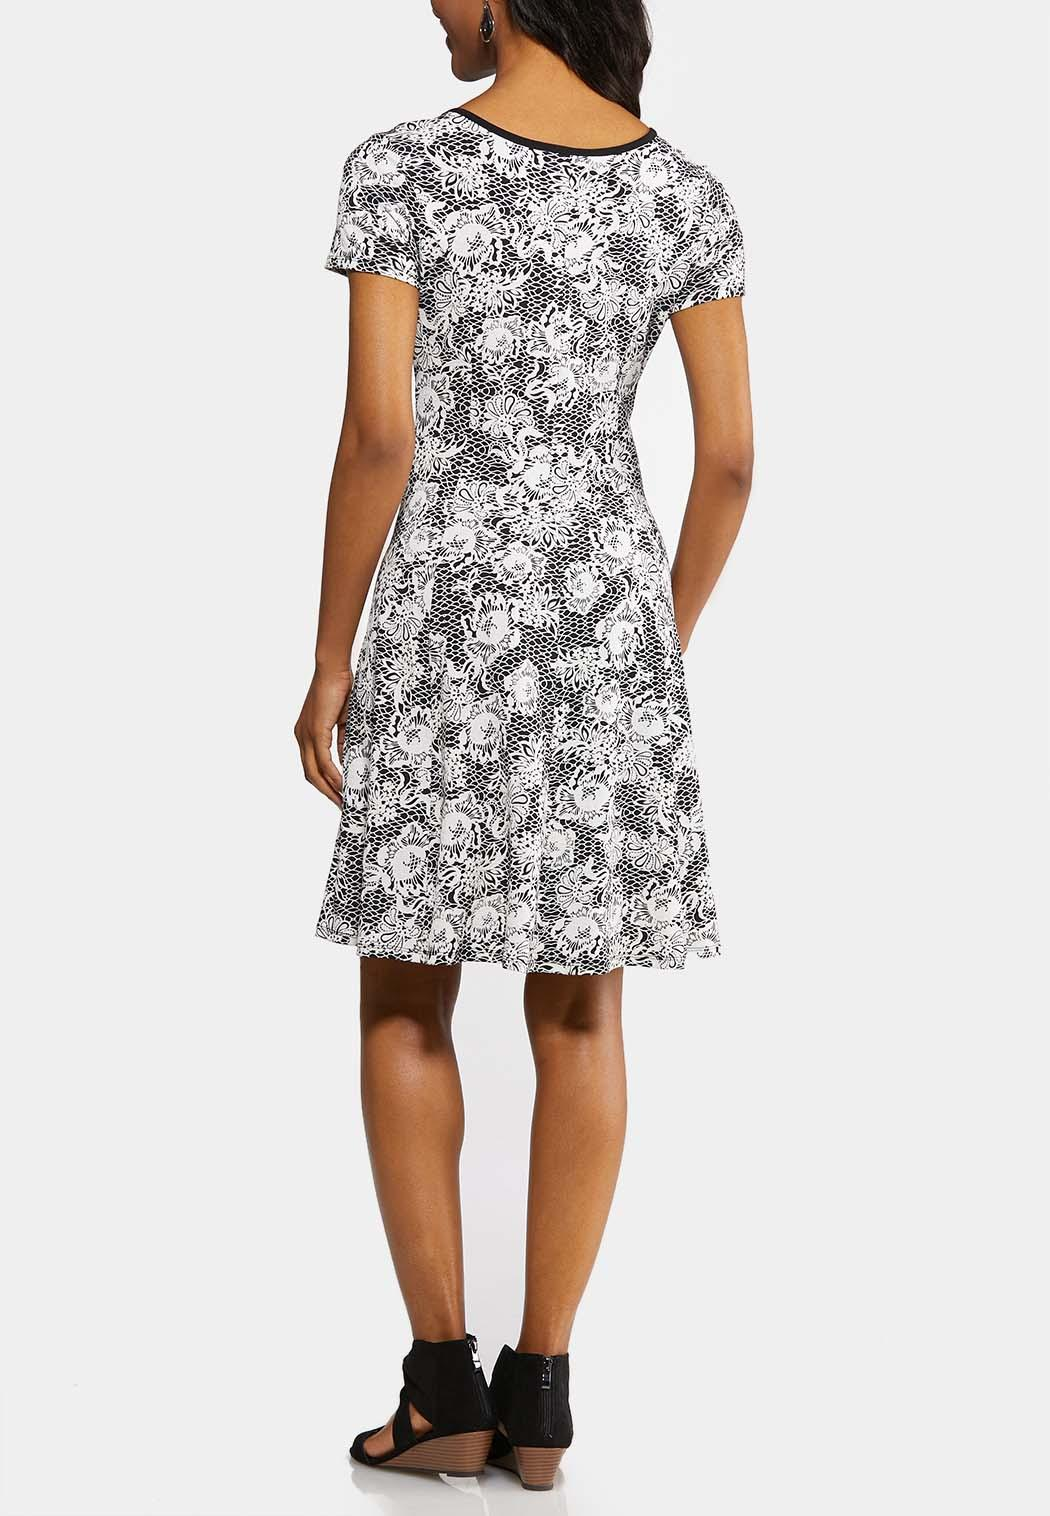 Piped Puff Floral Dress (Item #43861732)